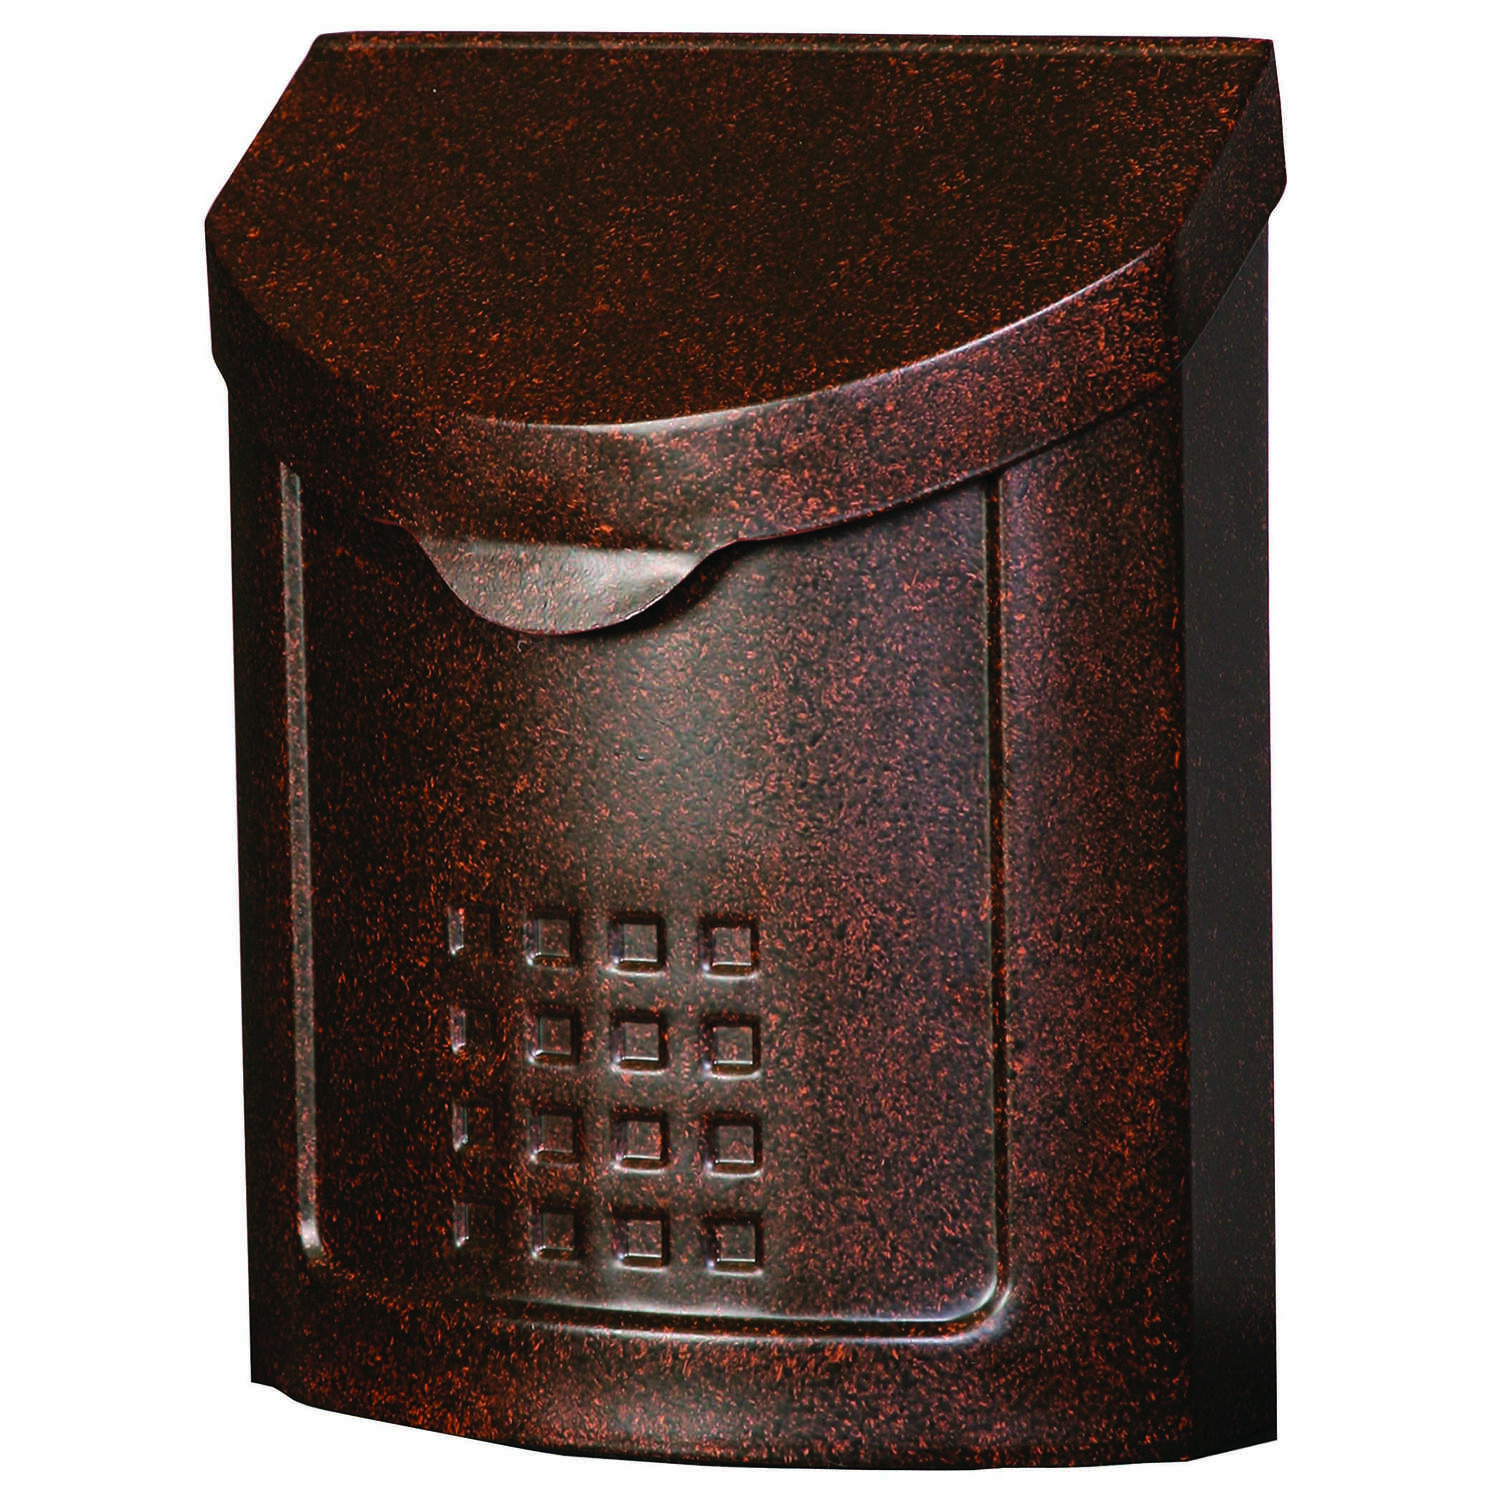 Gibraltar Mailboxes  Lockhart  Galvanized Steel  Wall-Mounted  Copper  Lockable Mailbox  12-1/4 in.